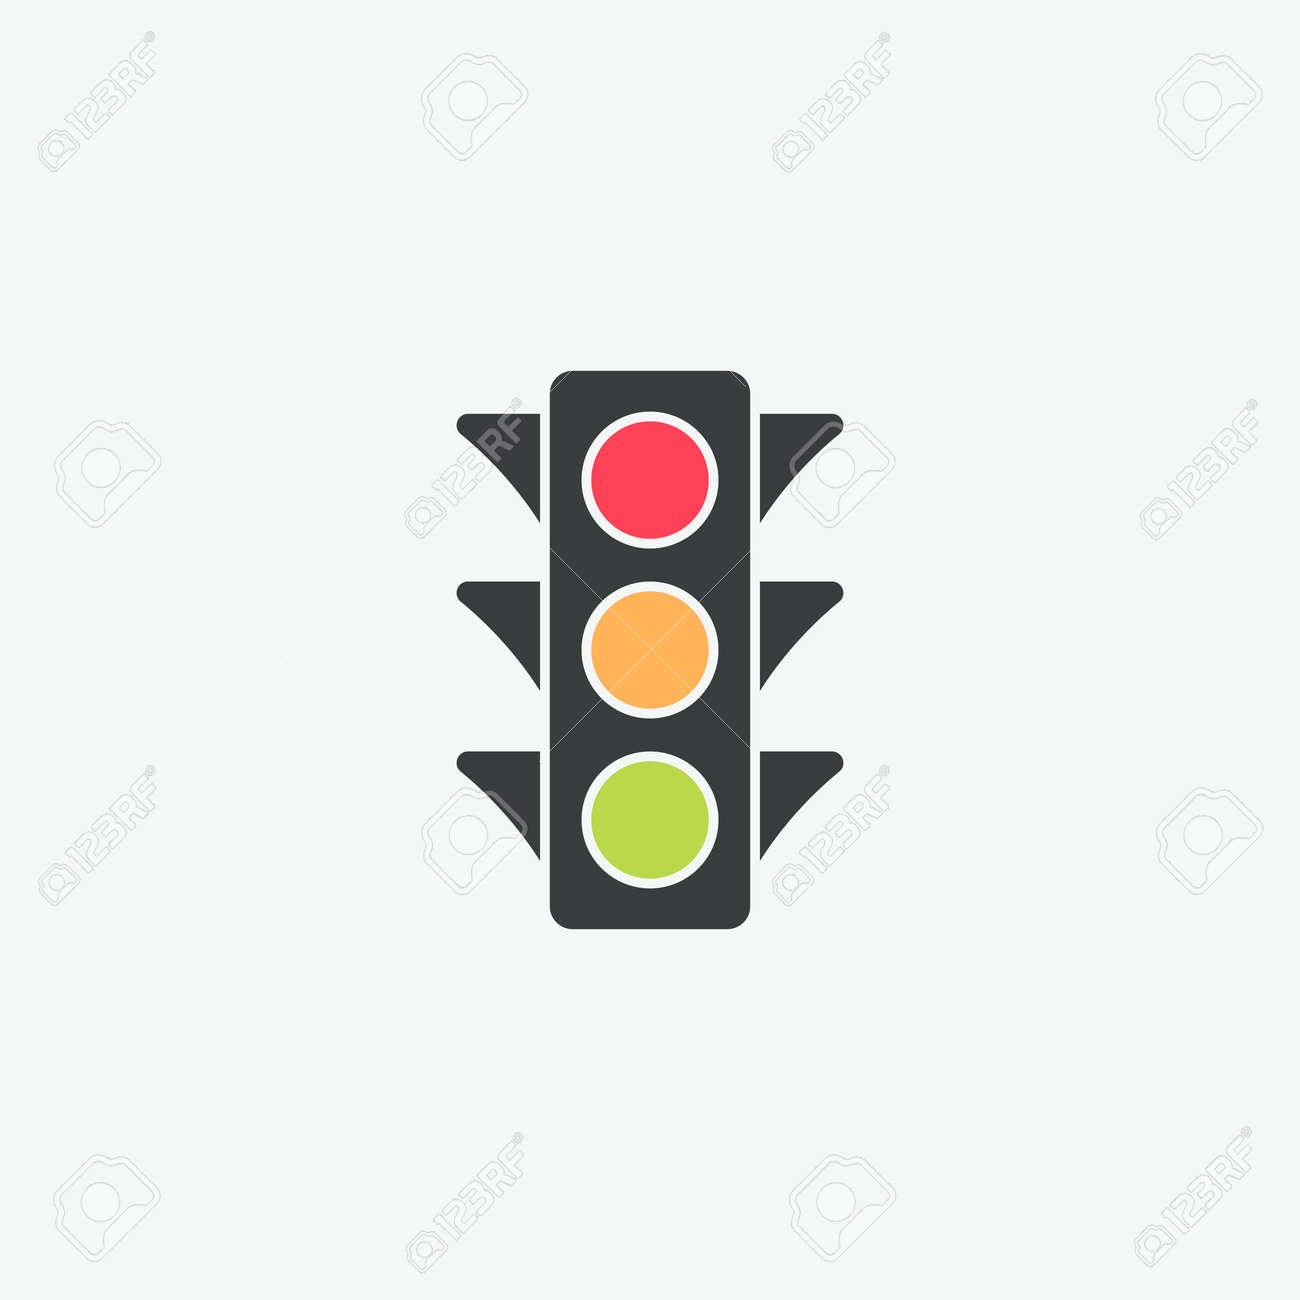 traffic light vector icon royalty free cliparts vectors and stock illustration image 110231335 traffic light vector icon